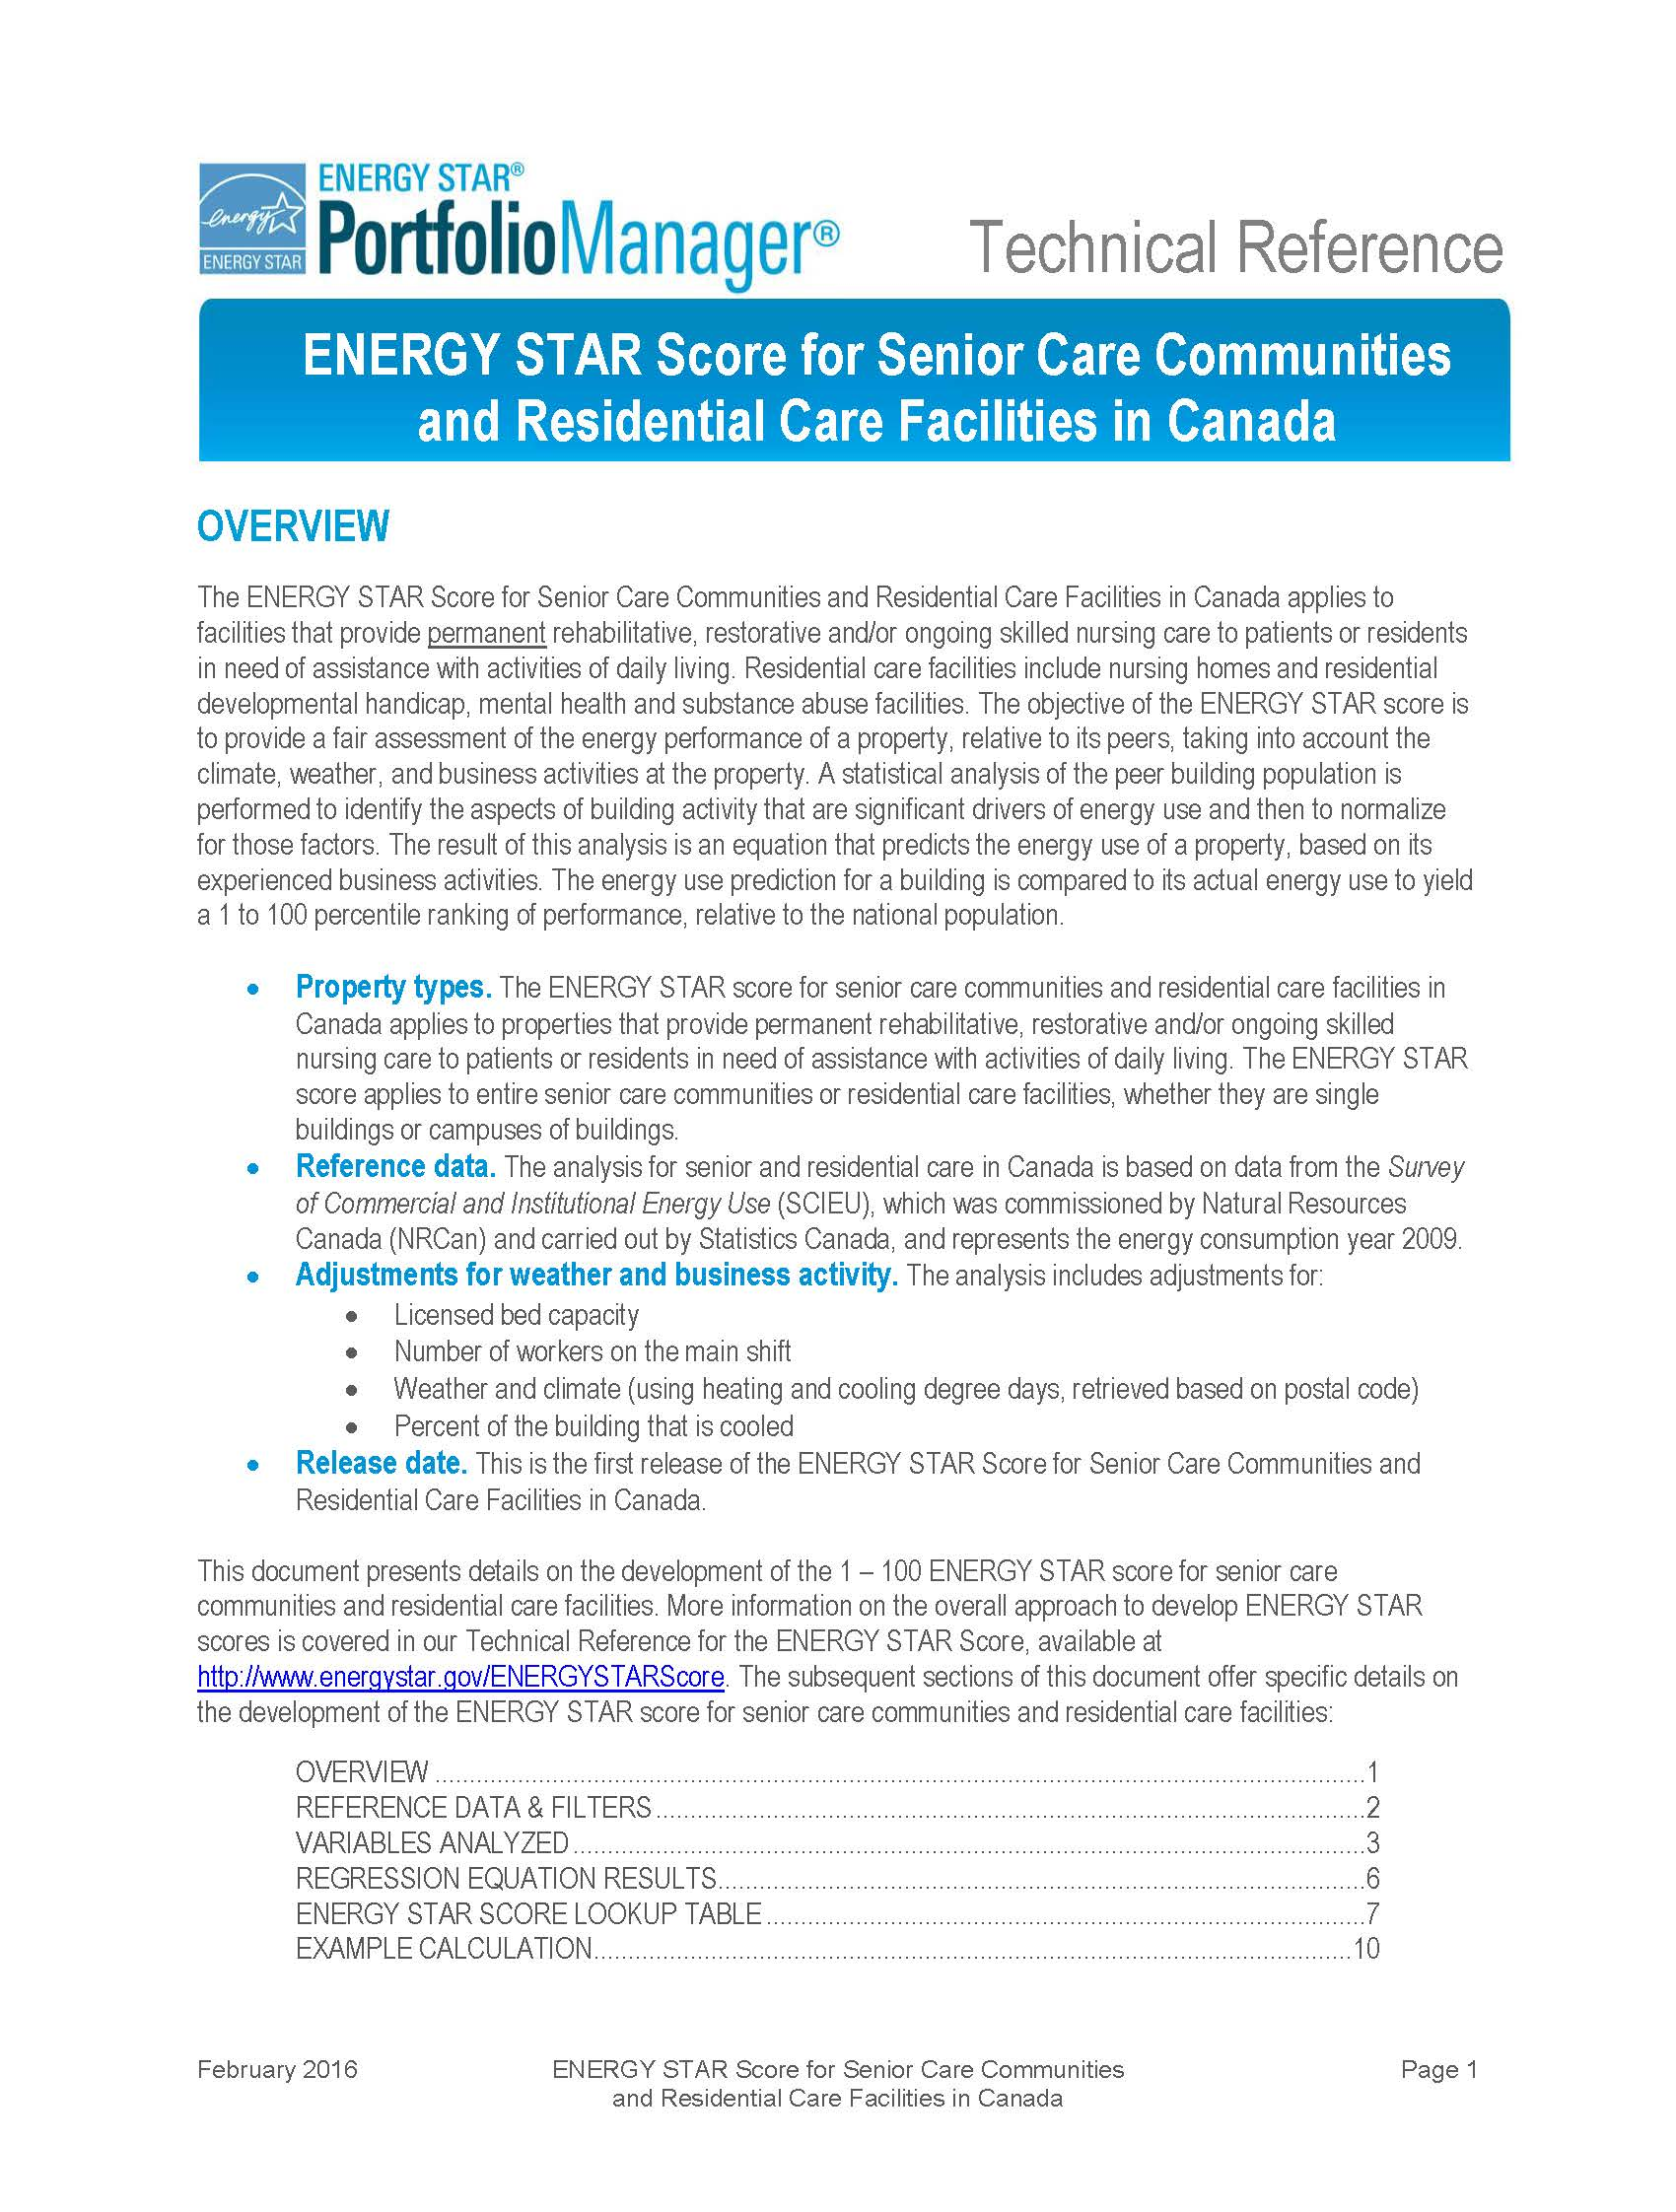 ENERGY STAR Senior Care Technical Reference thumbnail